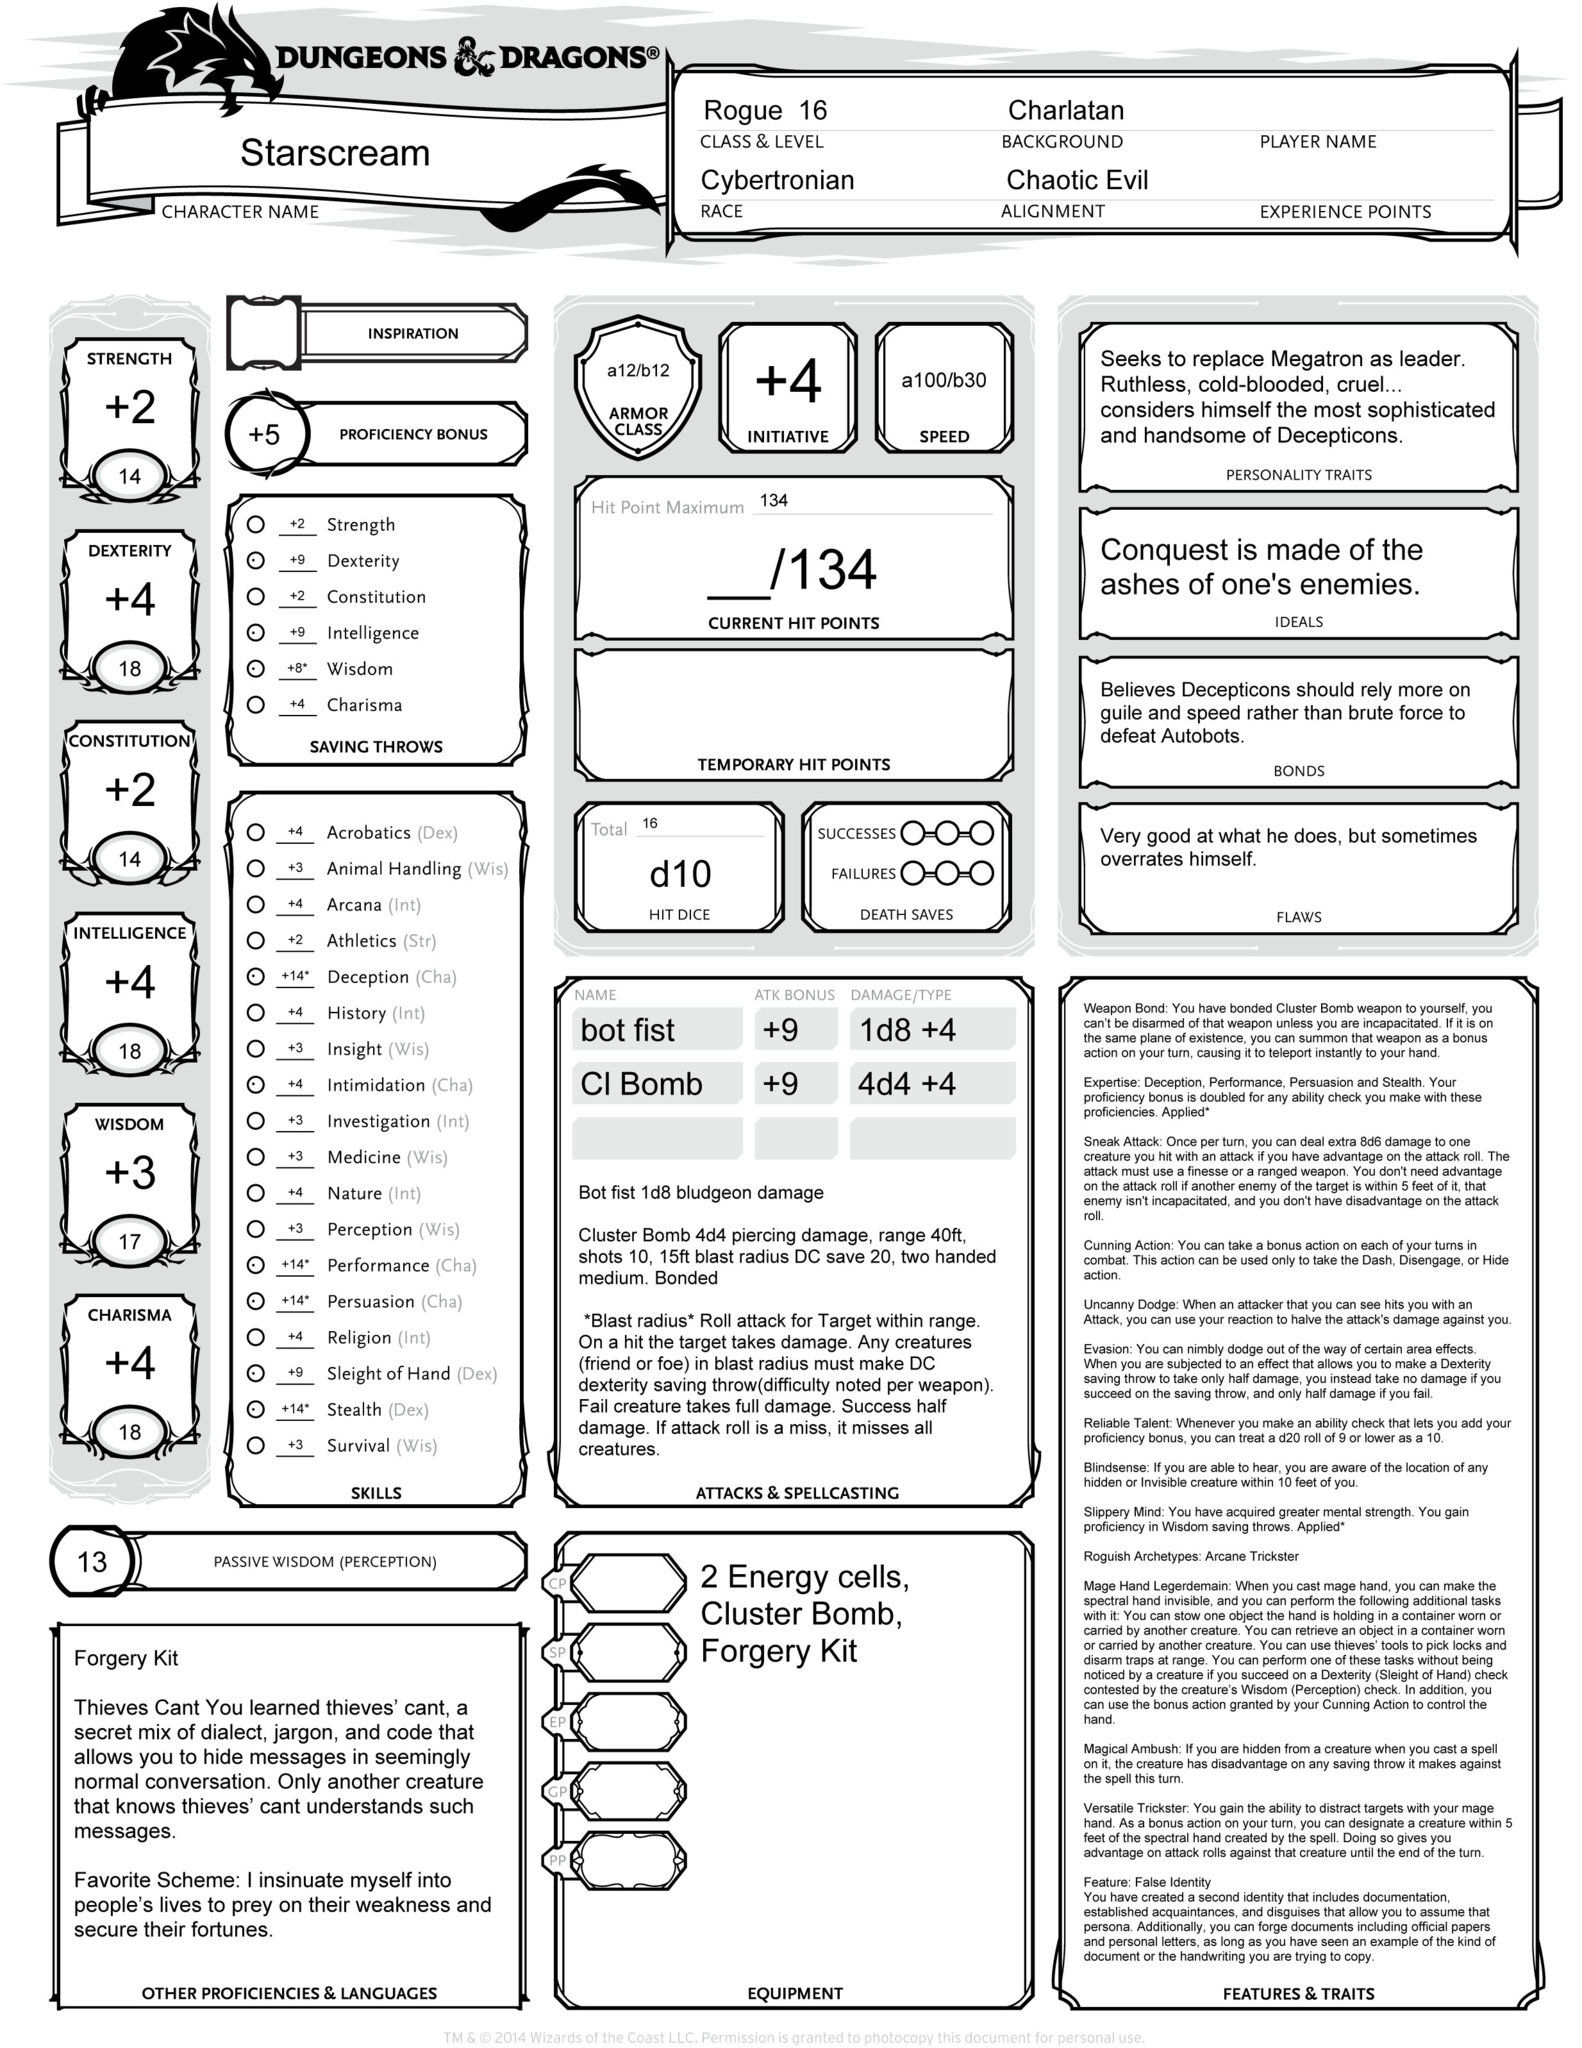 Dungeons & Dragons 5e G1 Transformers Rules homebrew